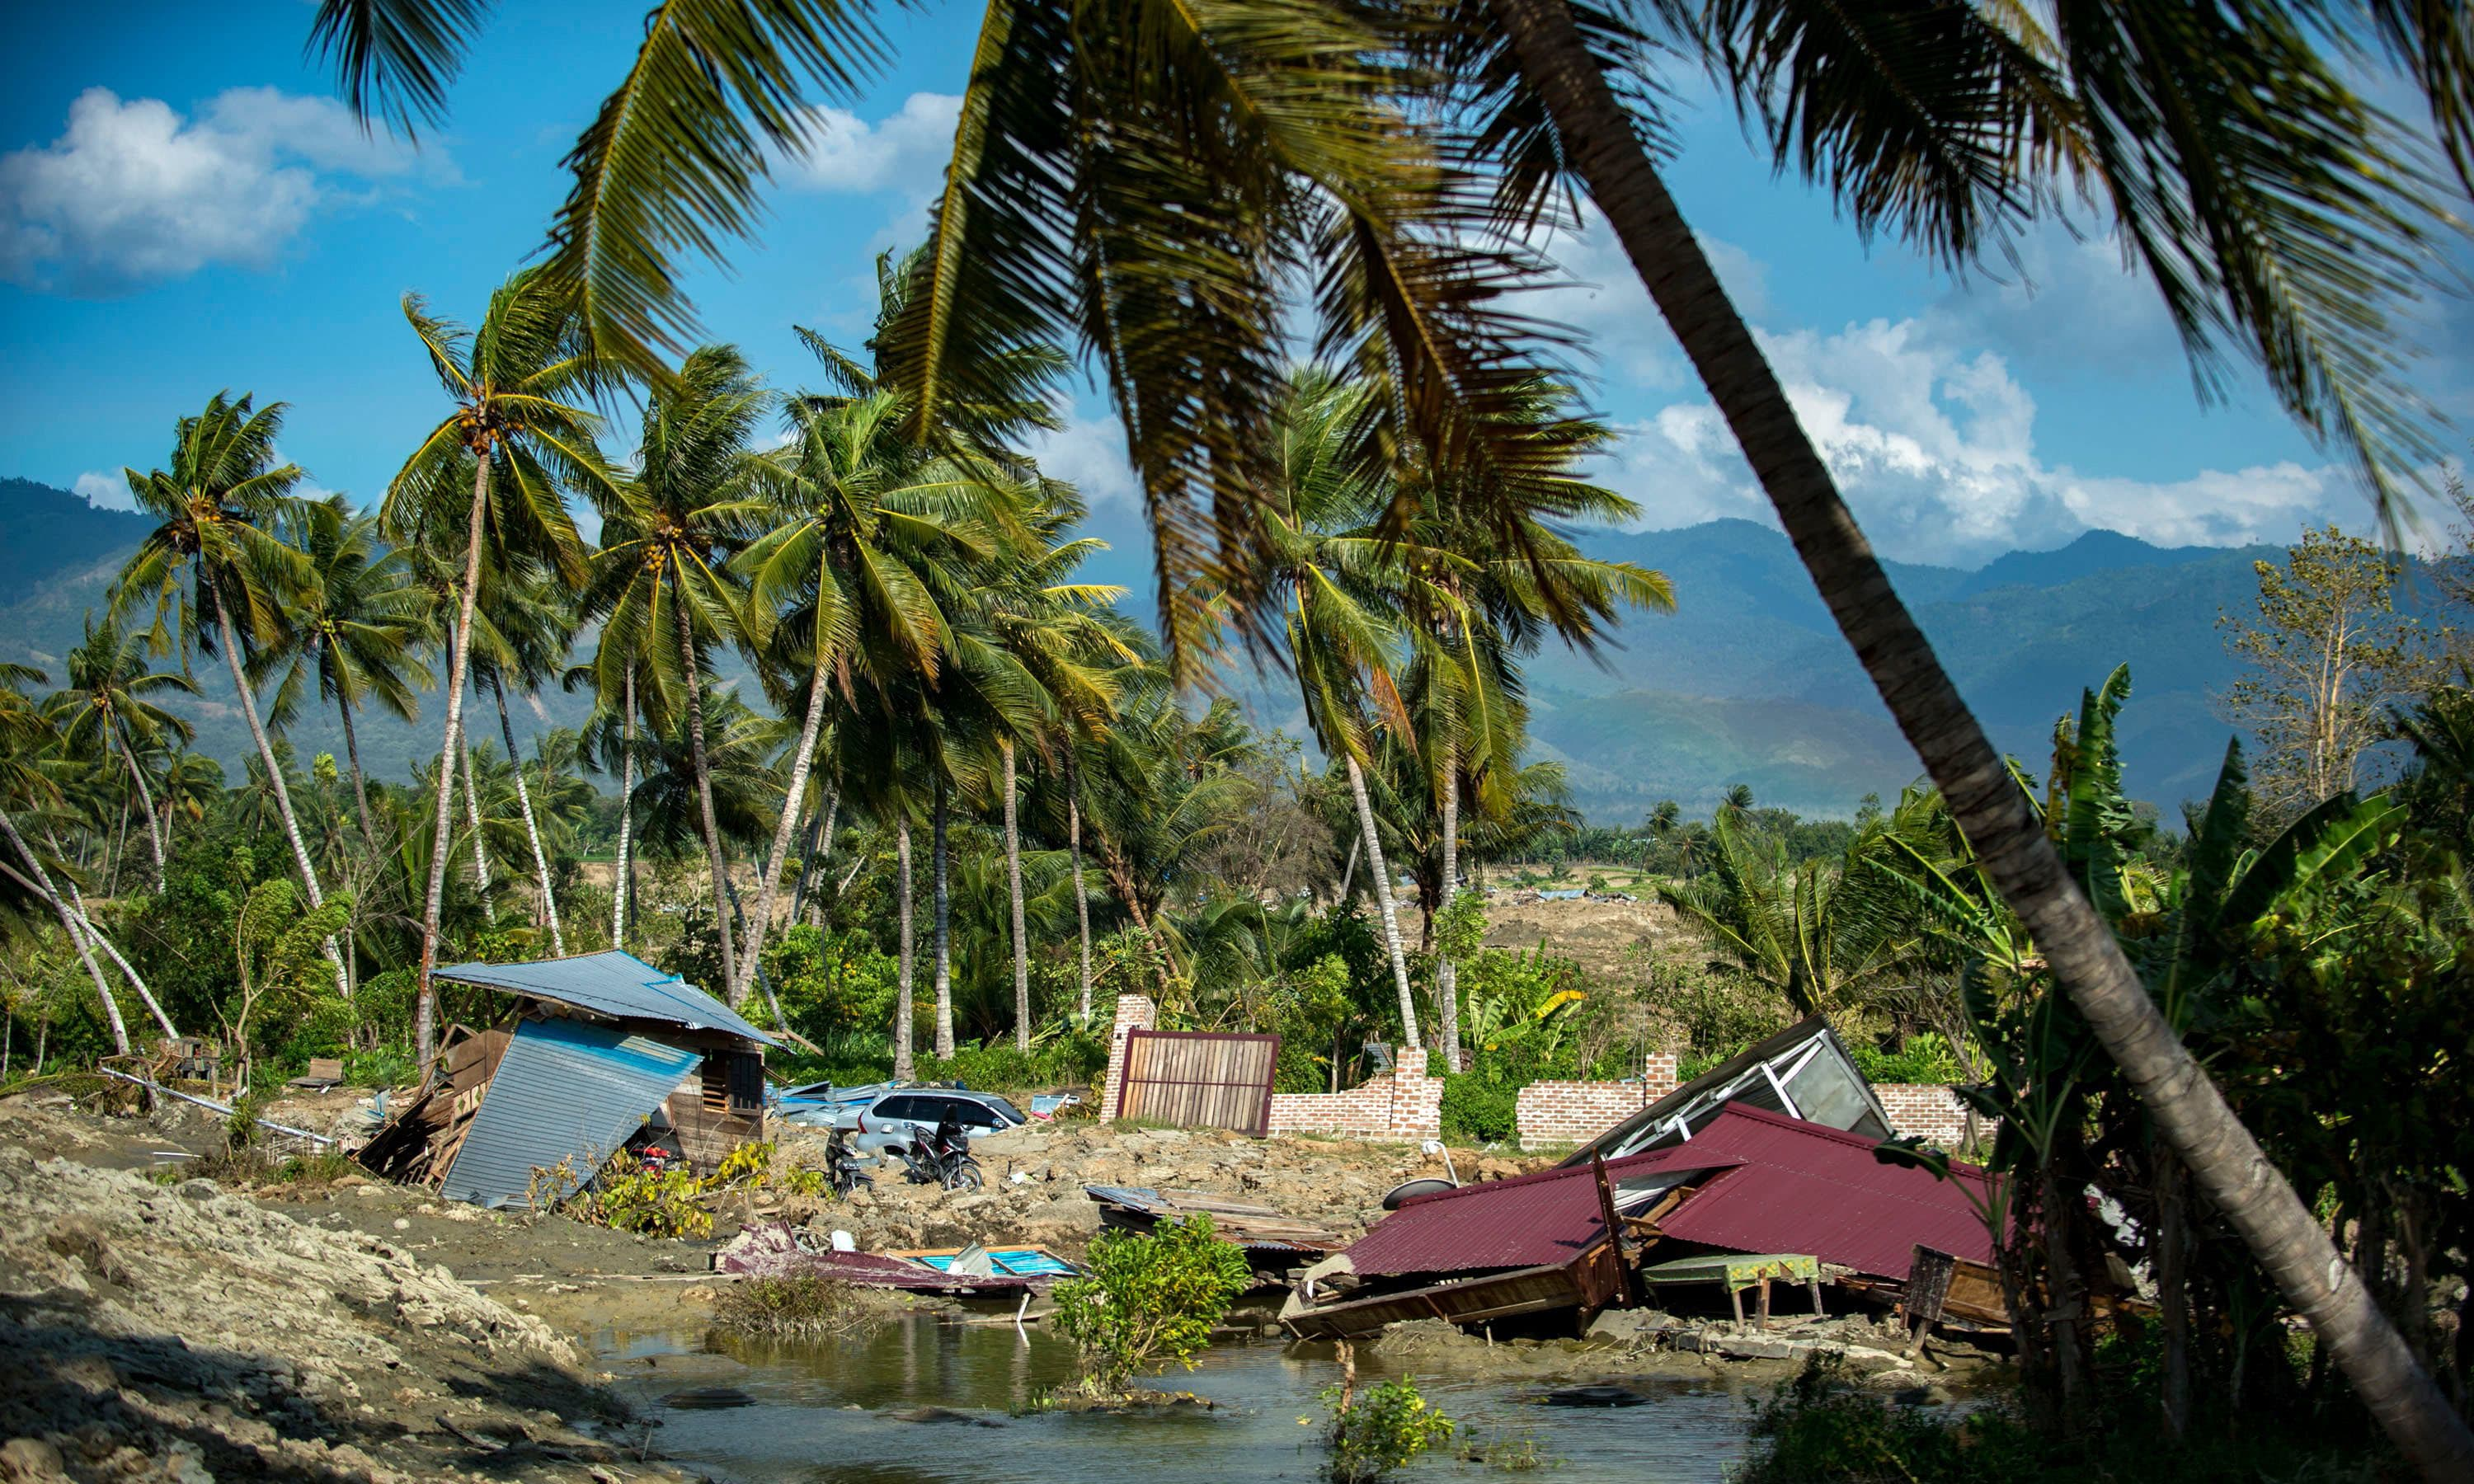 Destroyed houses and debris are seen in a village near Palu after an earthquake and tsunami hit the area on September 28. — AFP